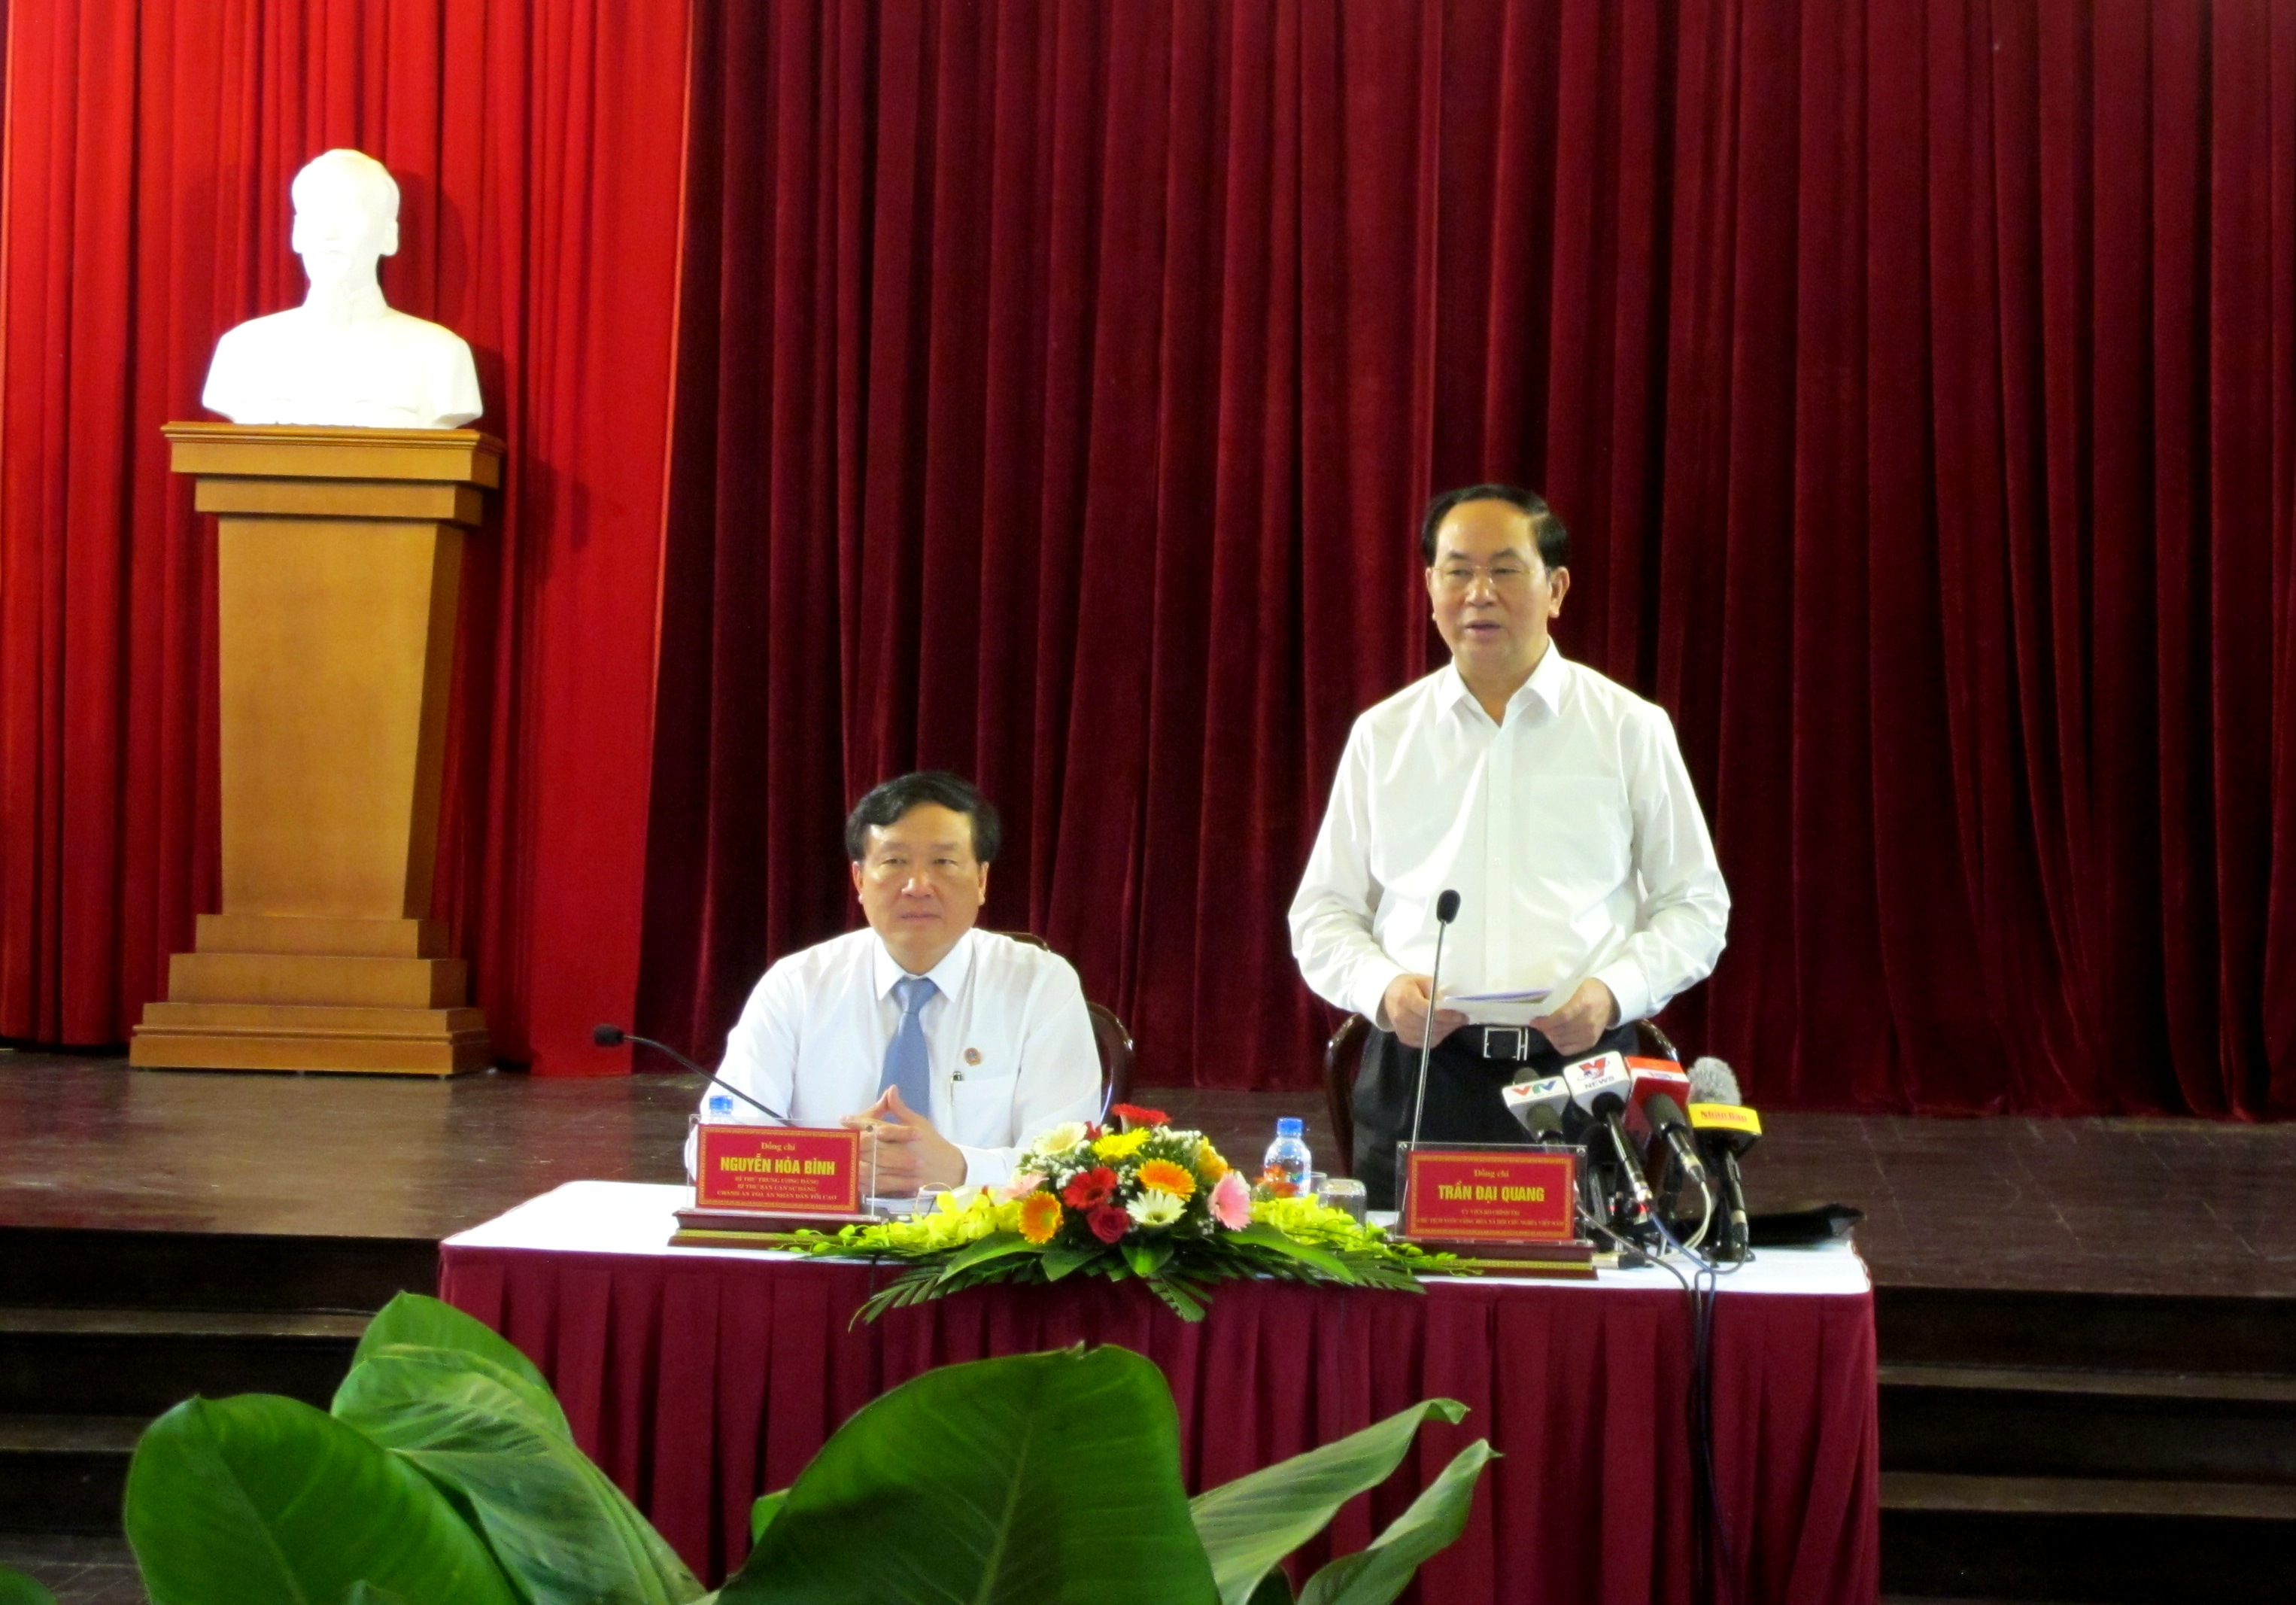 President Tran Dai Quang calls for rule of law to ensure justice